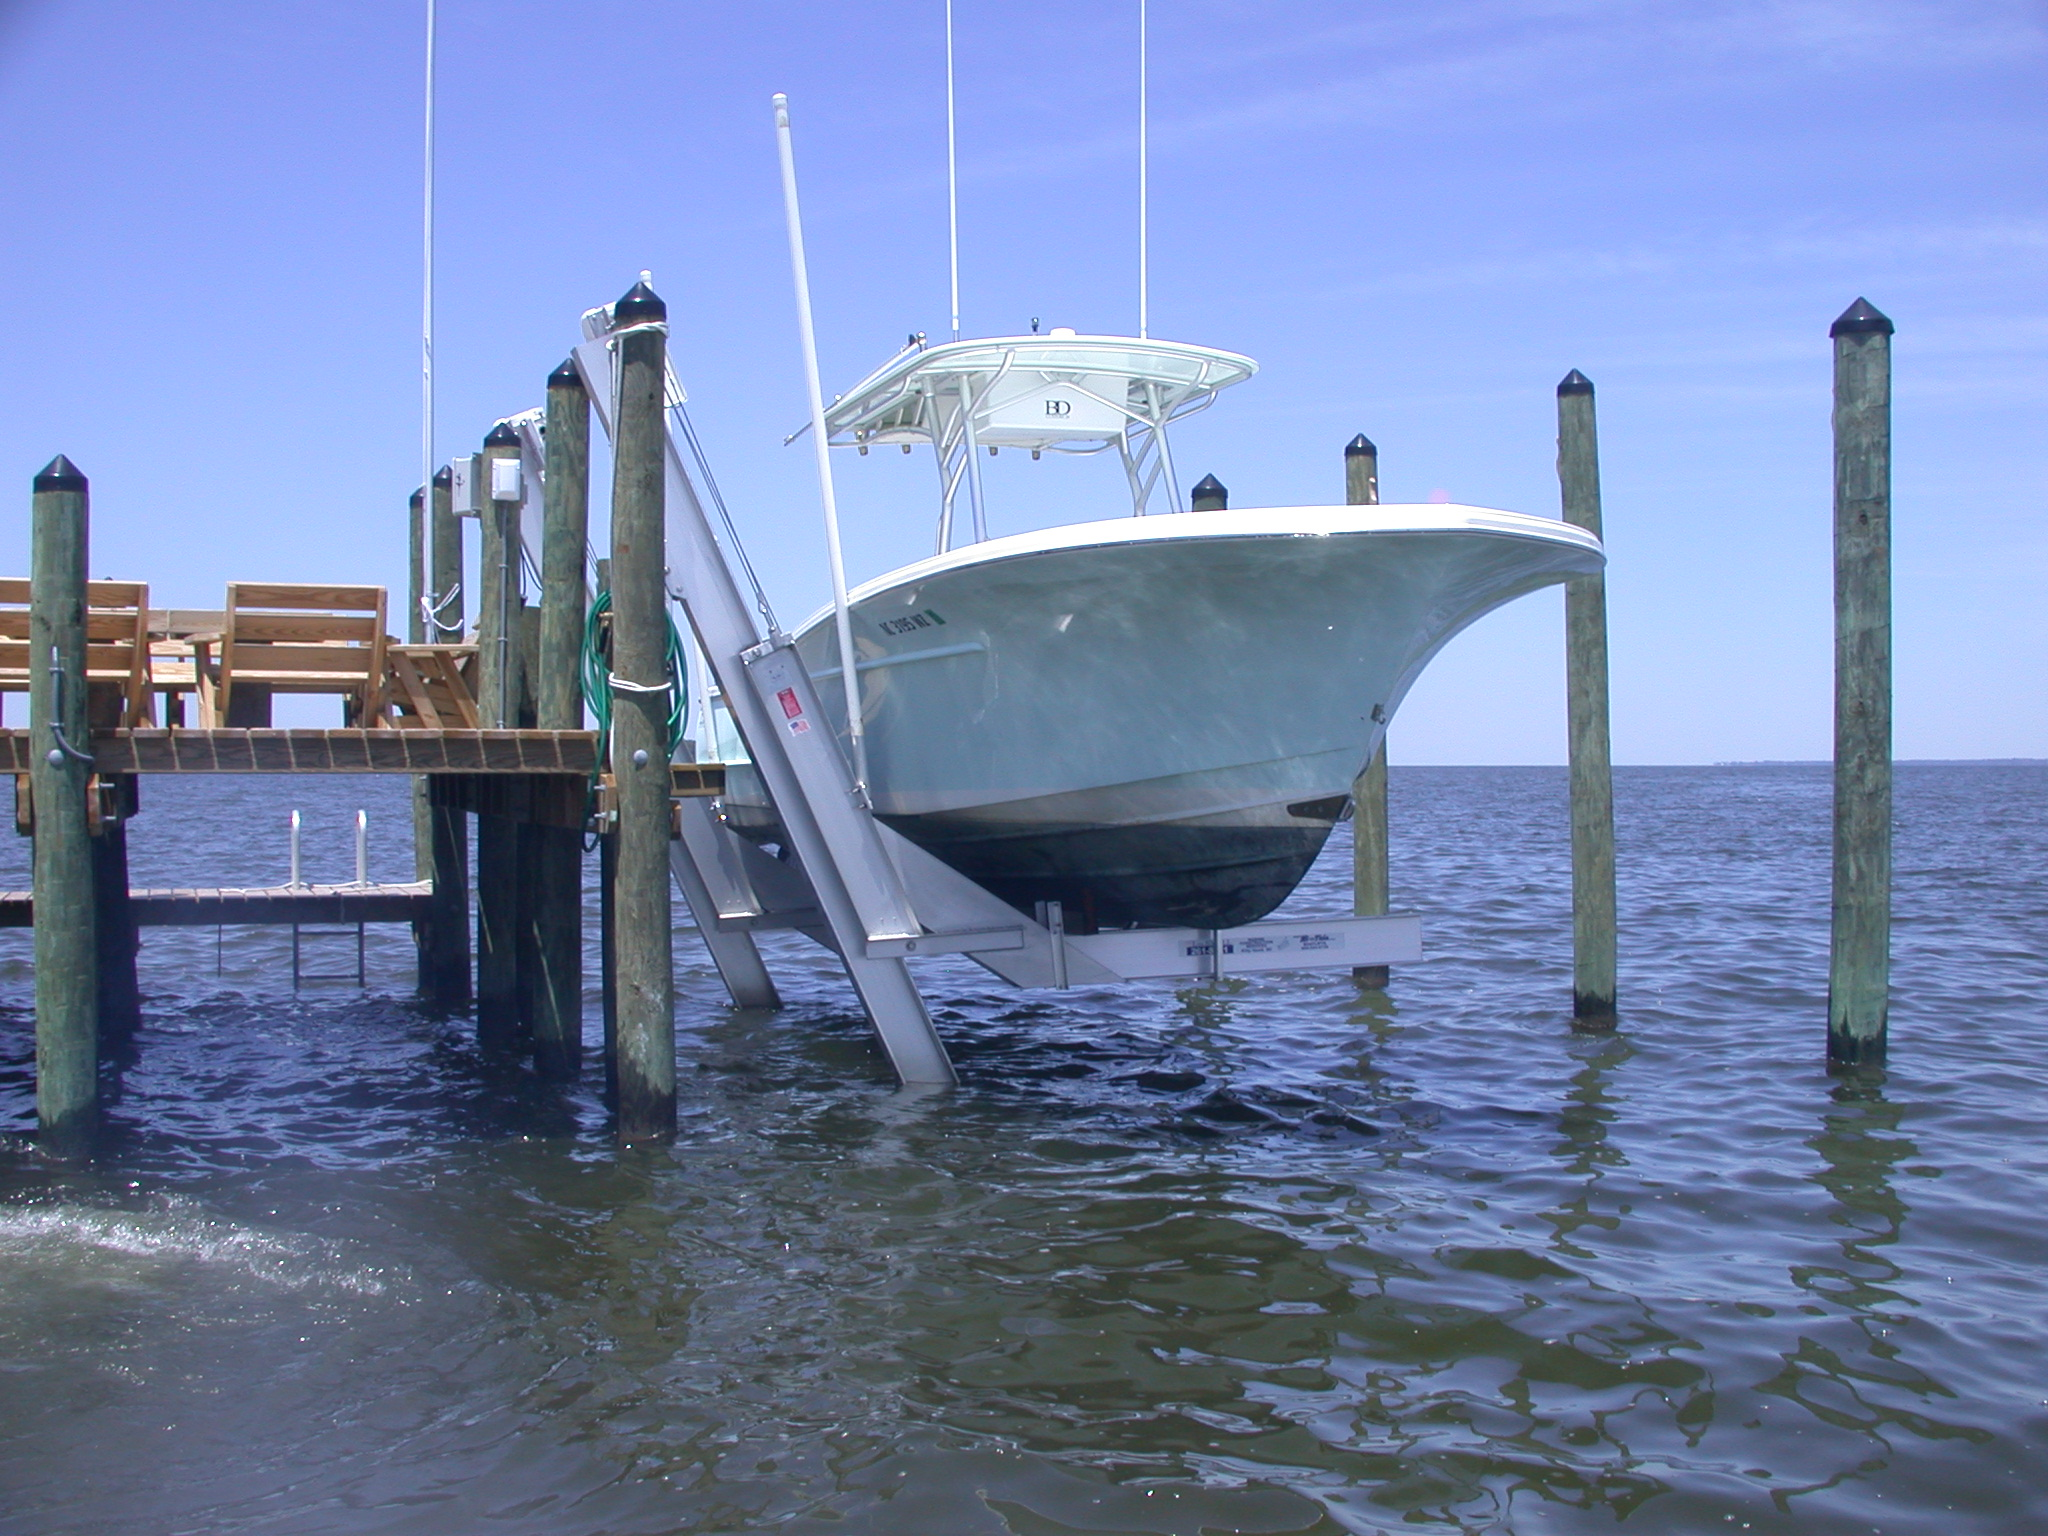 Hi-Tide Boat Lifts and PWLs - (installation, service and repair) LSI is Hi-Tide's authorized dealer of boat lifts ranging in lifting capacity from 1,000 lbs to 30,000 lbs. Hi-Tide also offers their Yacht Lifts for lifting capacity up to 90,000 tons. Hi-Tide's patented one-piece sealed gear box provides customers with a cleaner, quieter, faster, and more durable solution to lifting their boat. LSI stocks parts and provides 24-48 hour emergency repair to our Outer Banks and Currituck boat lift clients.